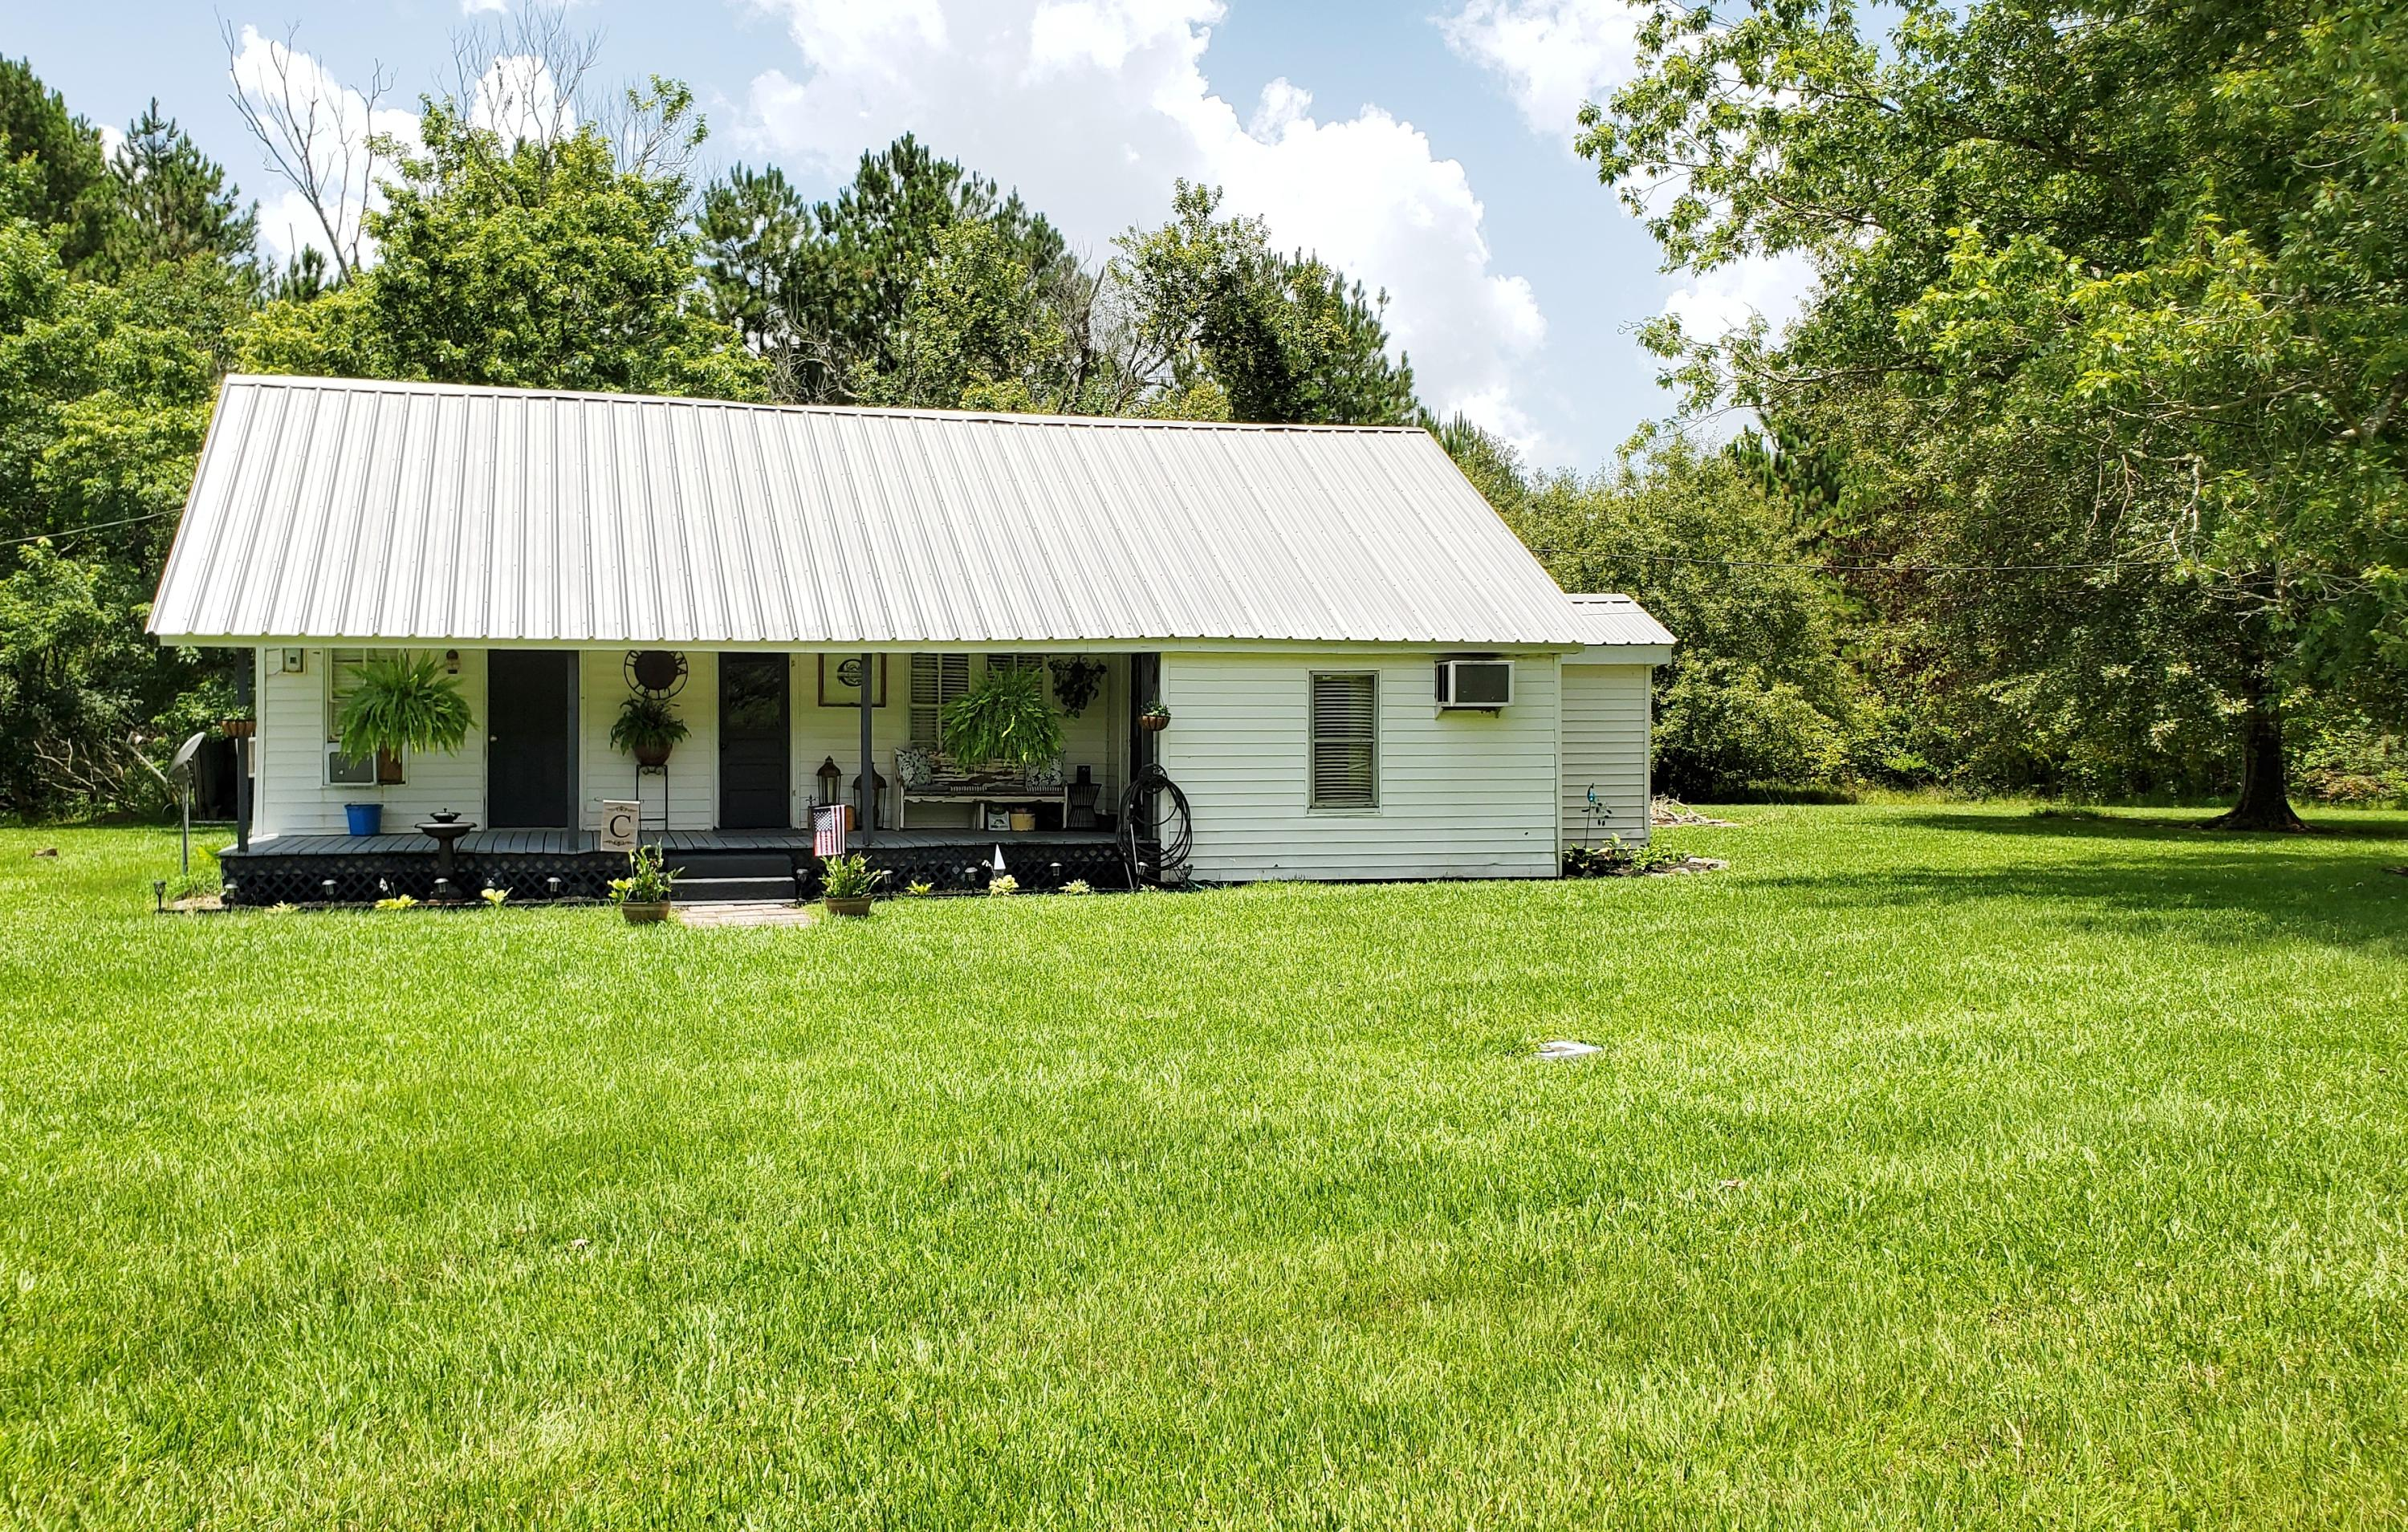 Longville home for sale, 774 Phil Cooley Rd, Longville LA - $91,000